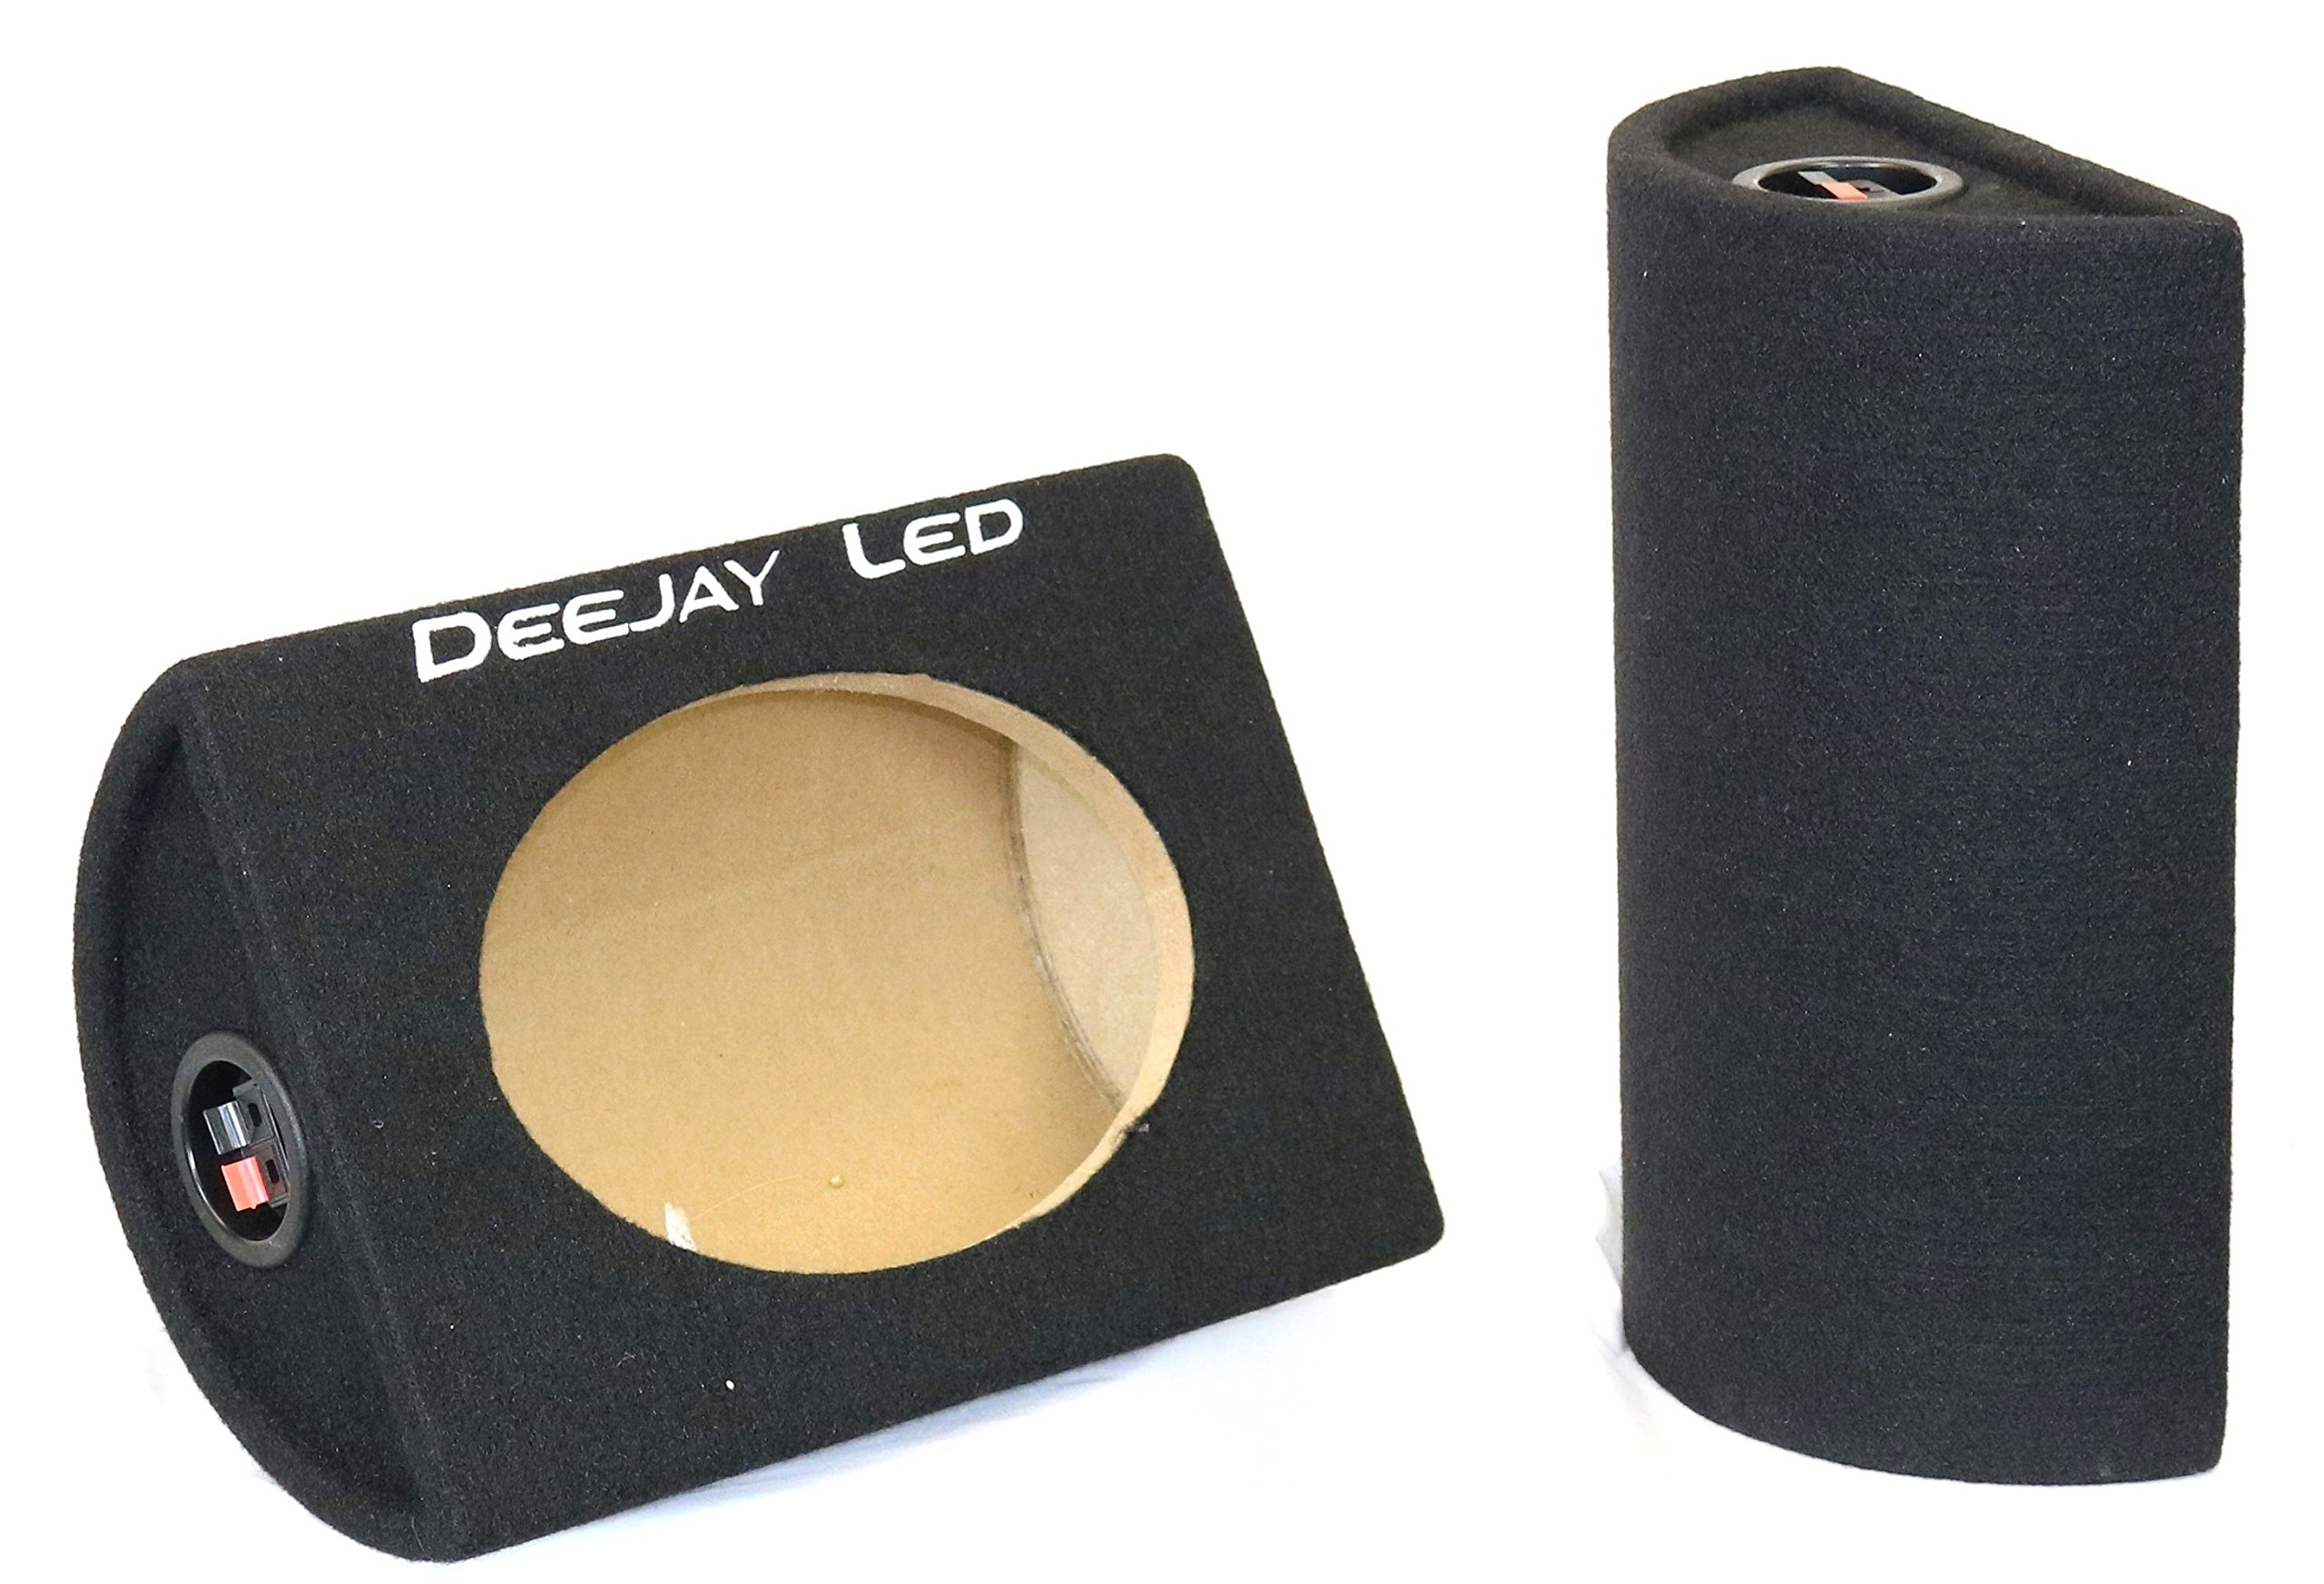 DEEJAY LED TBH699 Pair 6X9 Speaker Box